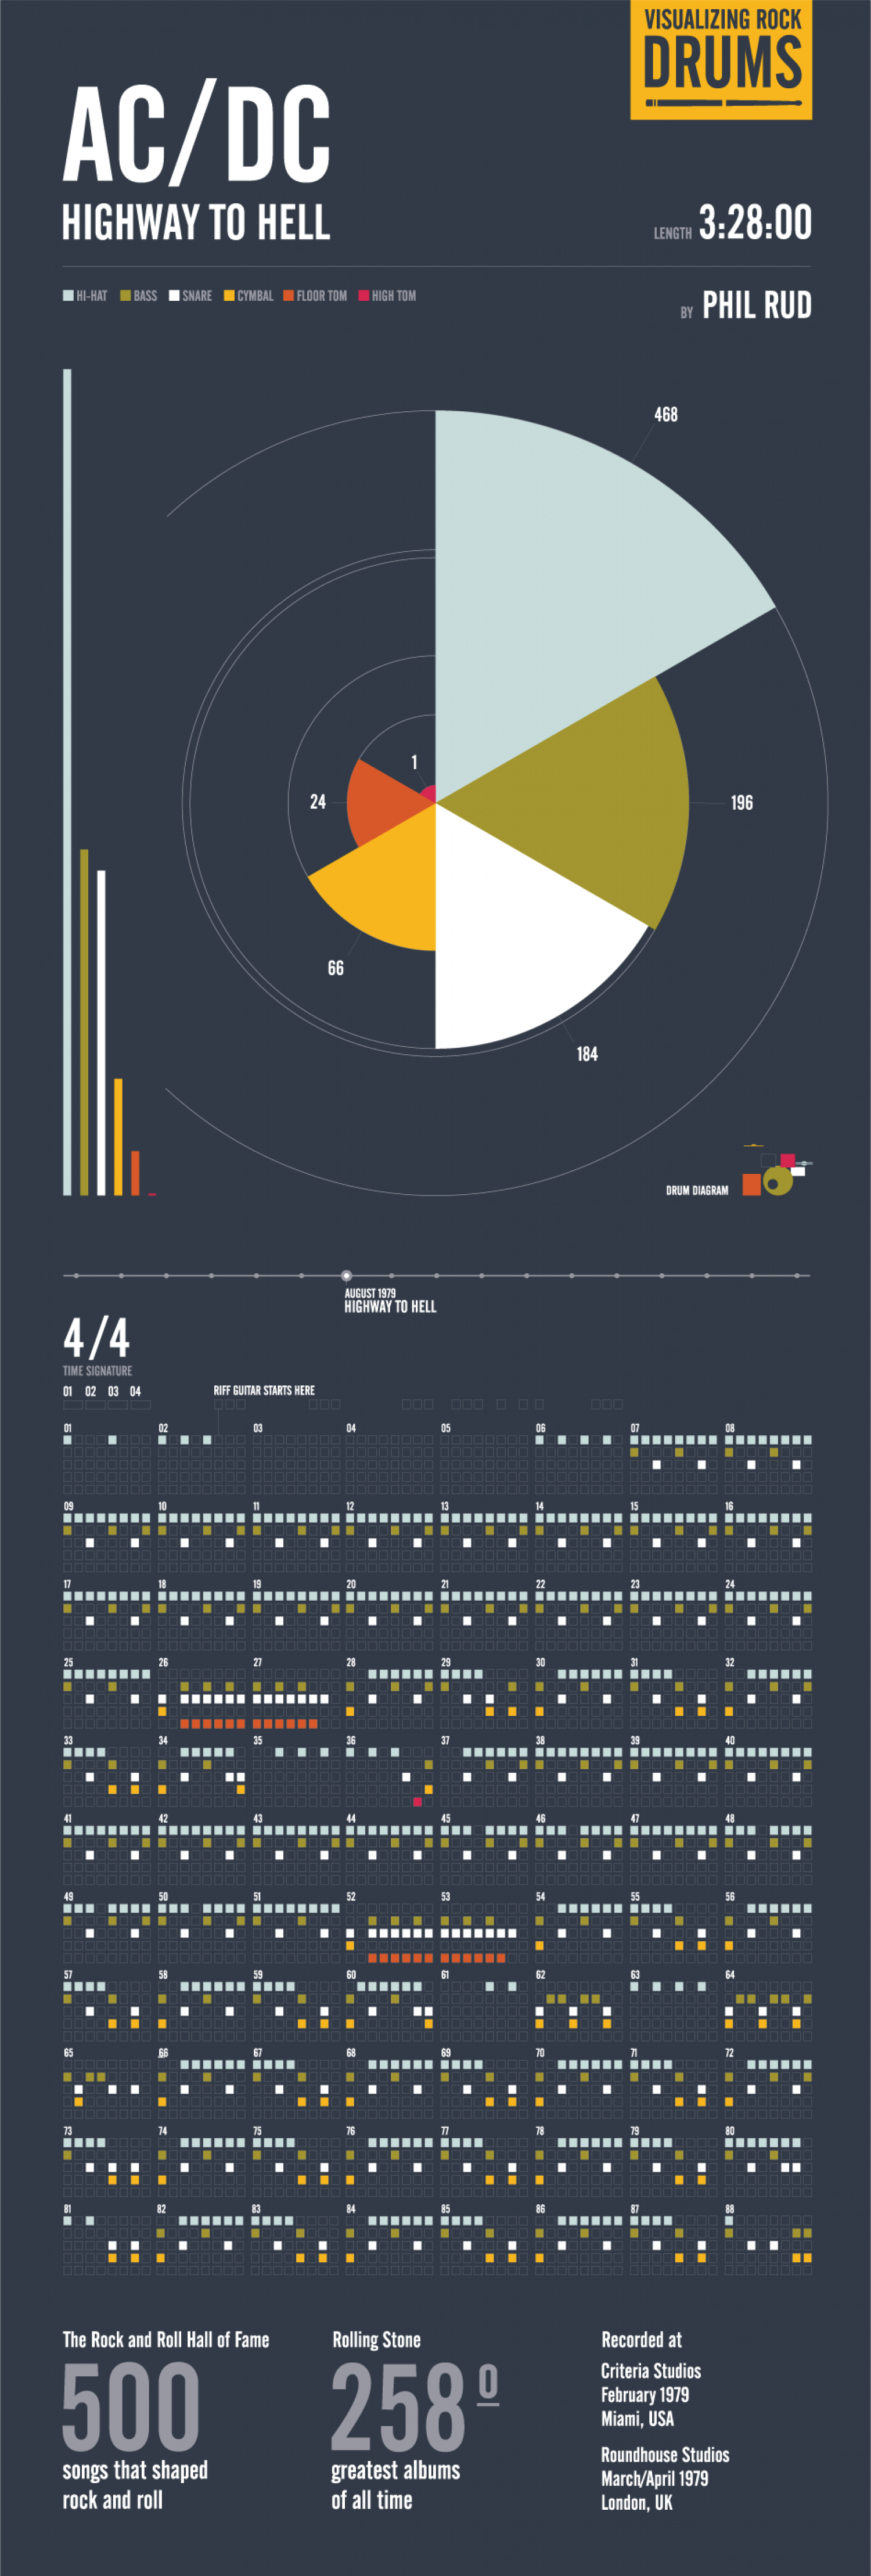 Visualizing Rock Drums: AC/DC Highway to Hell Infographic